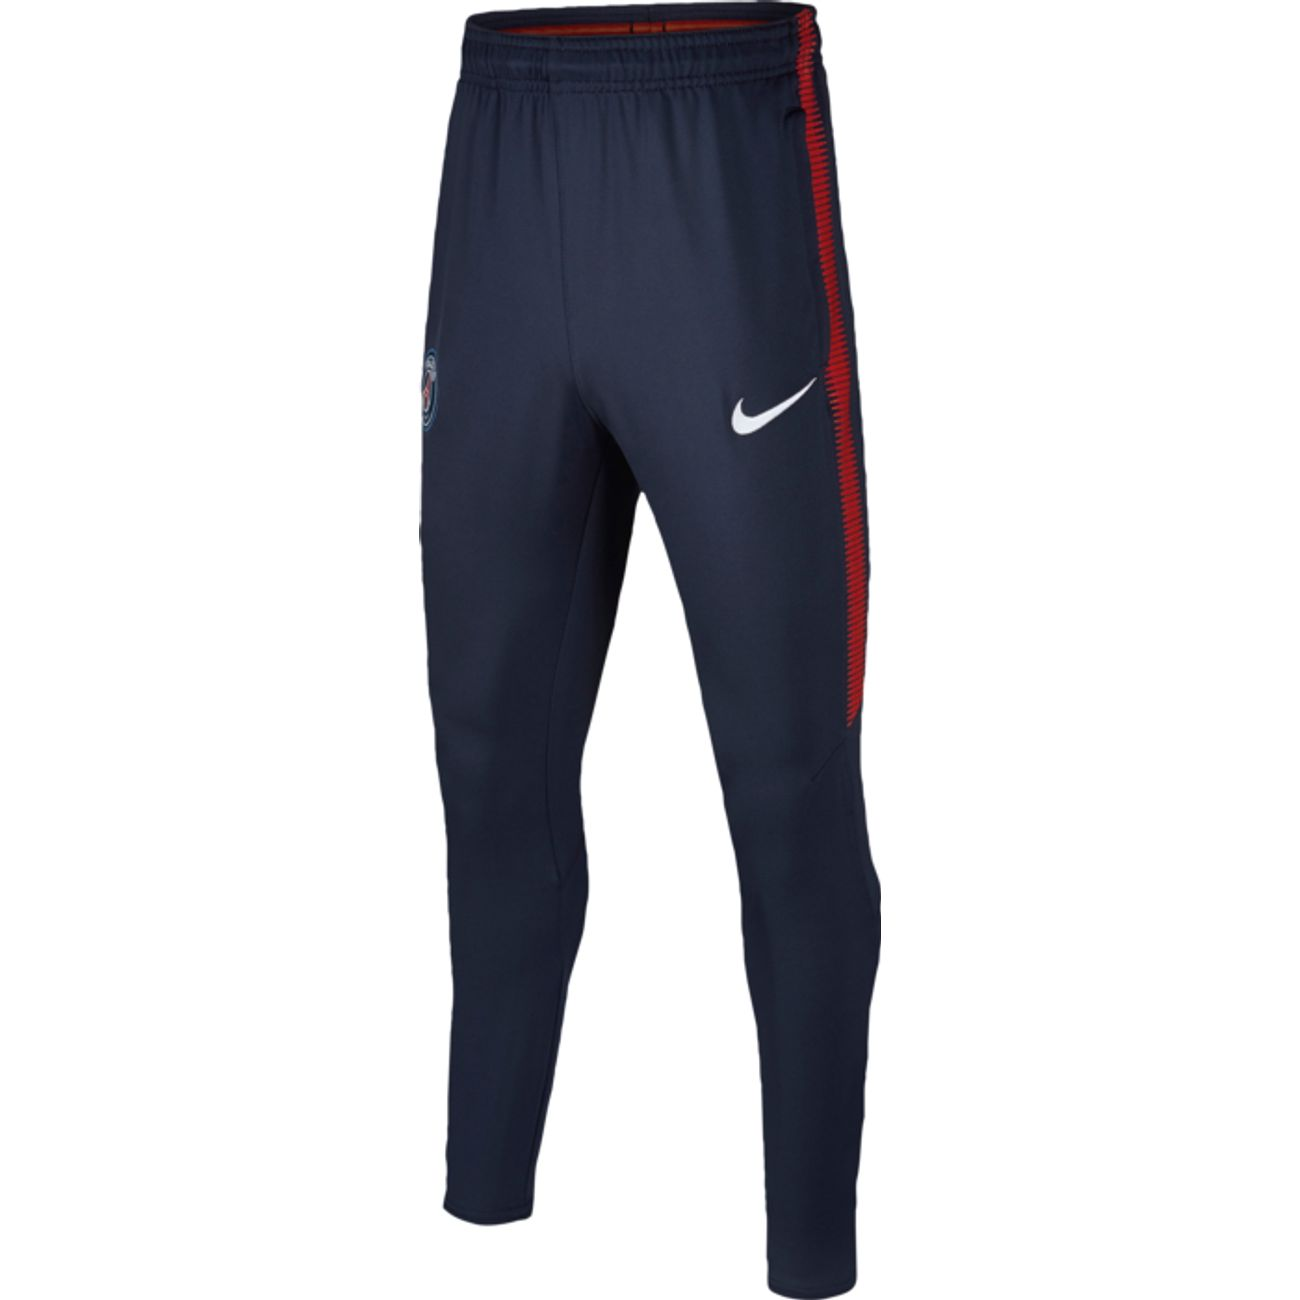 PANTALON FOOTBALL  enfant NIKE PSG TECH PANT JR 17